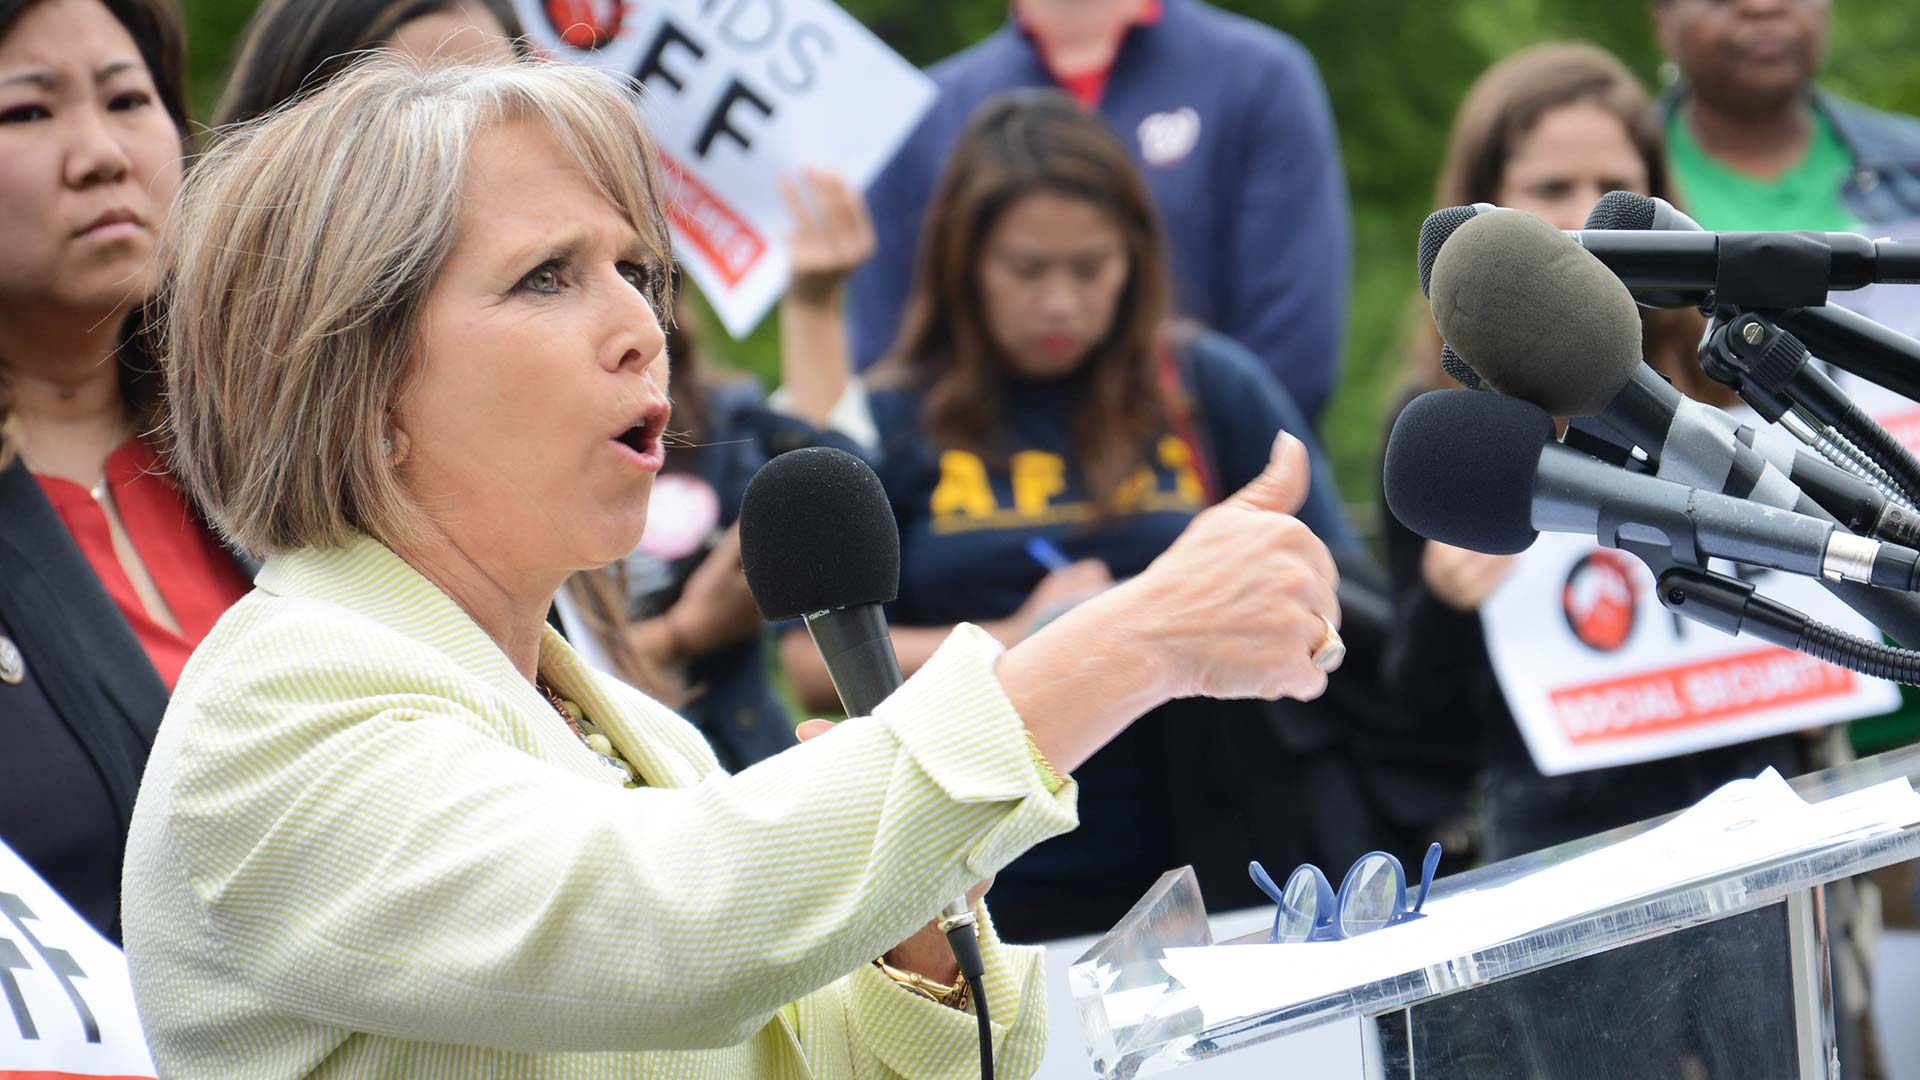 Then-U.S. Rep. Michelle Lujan Grisham in 2017.